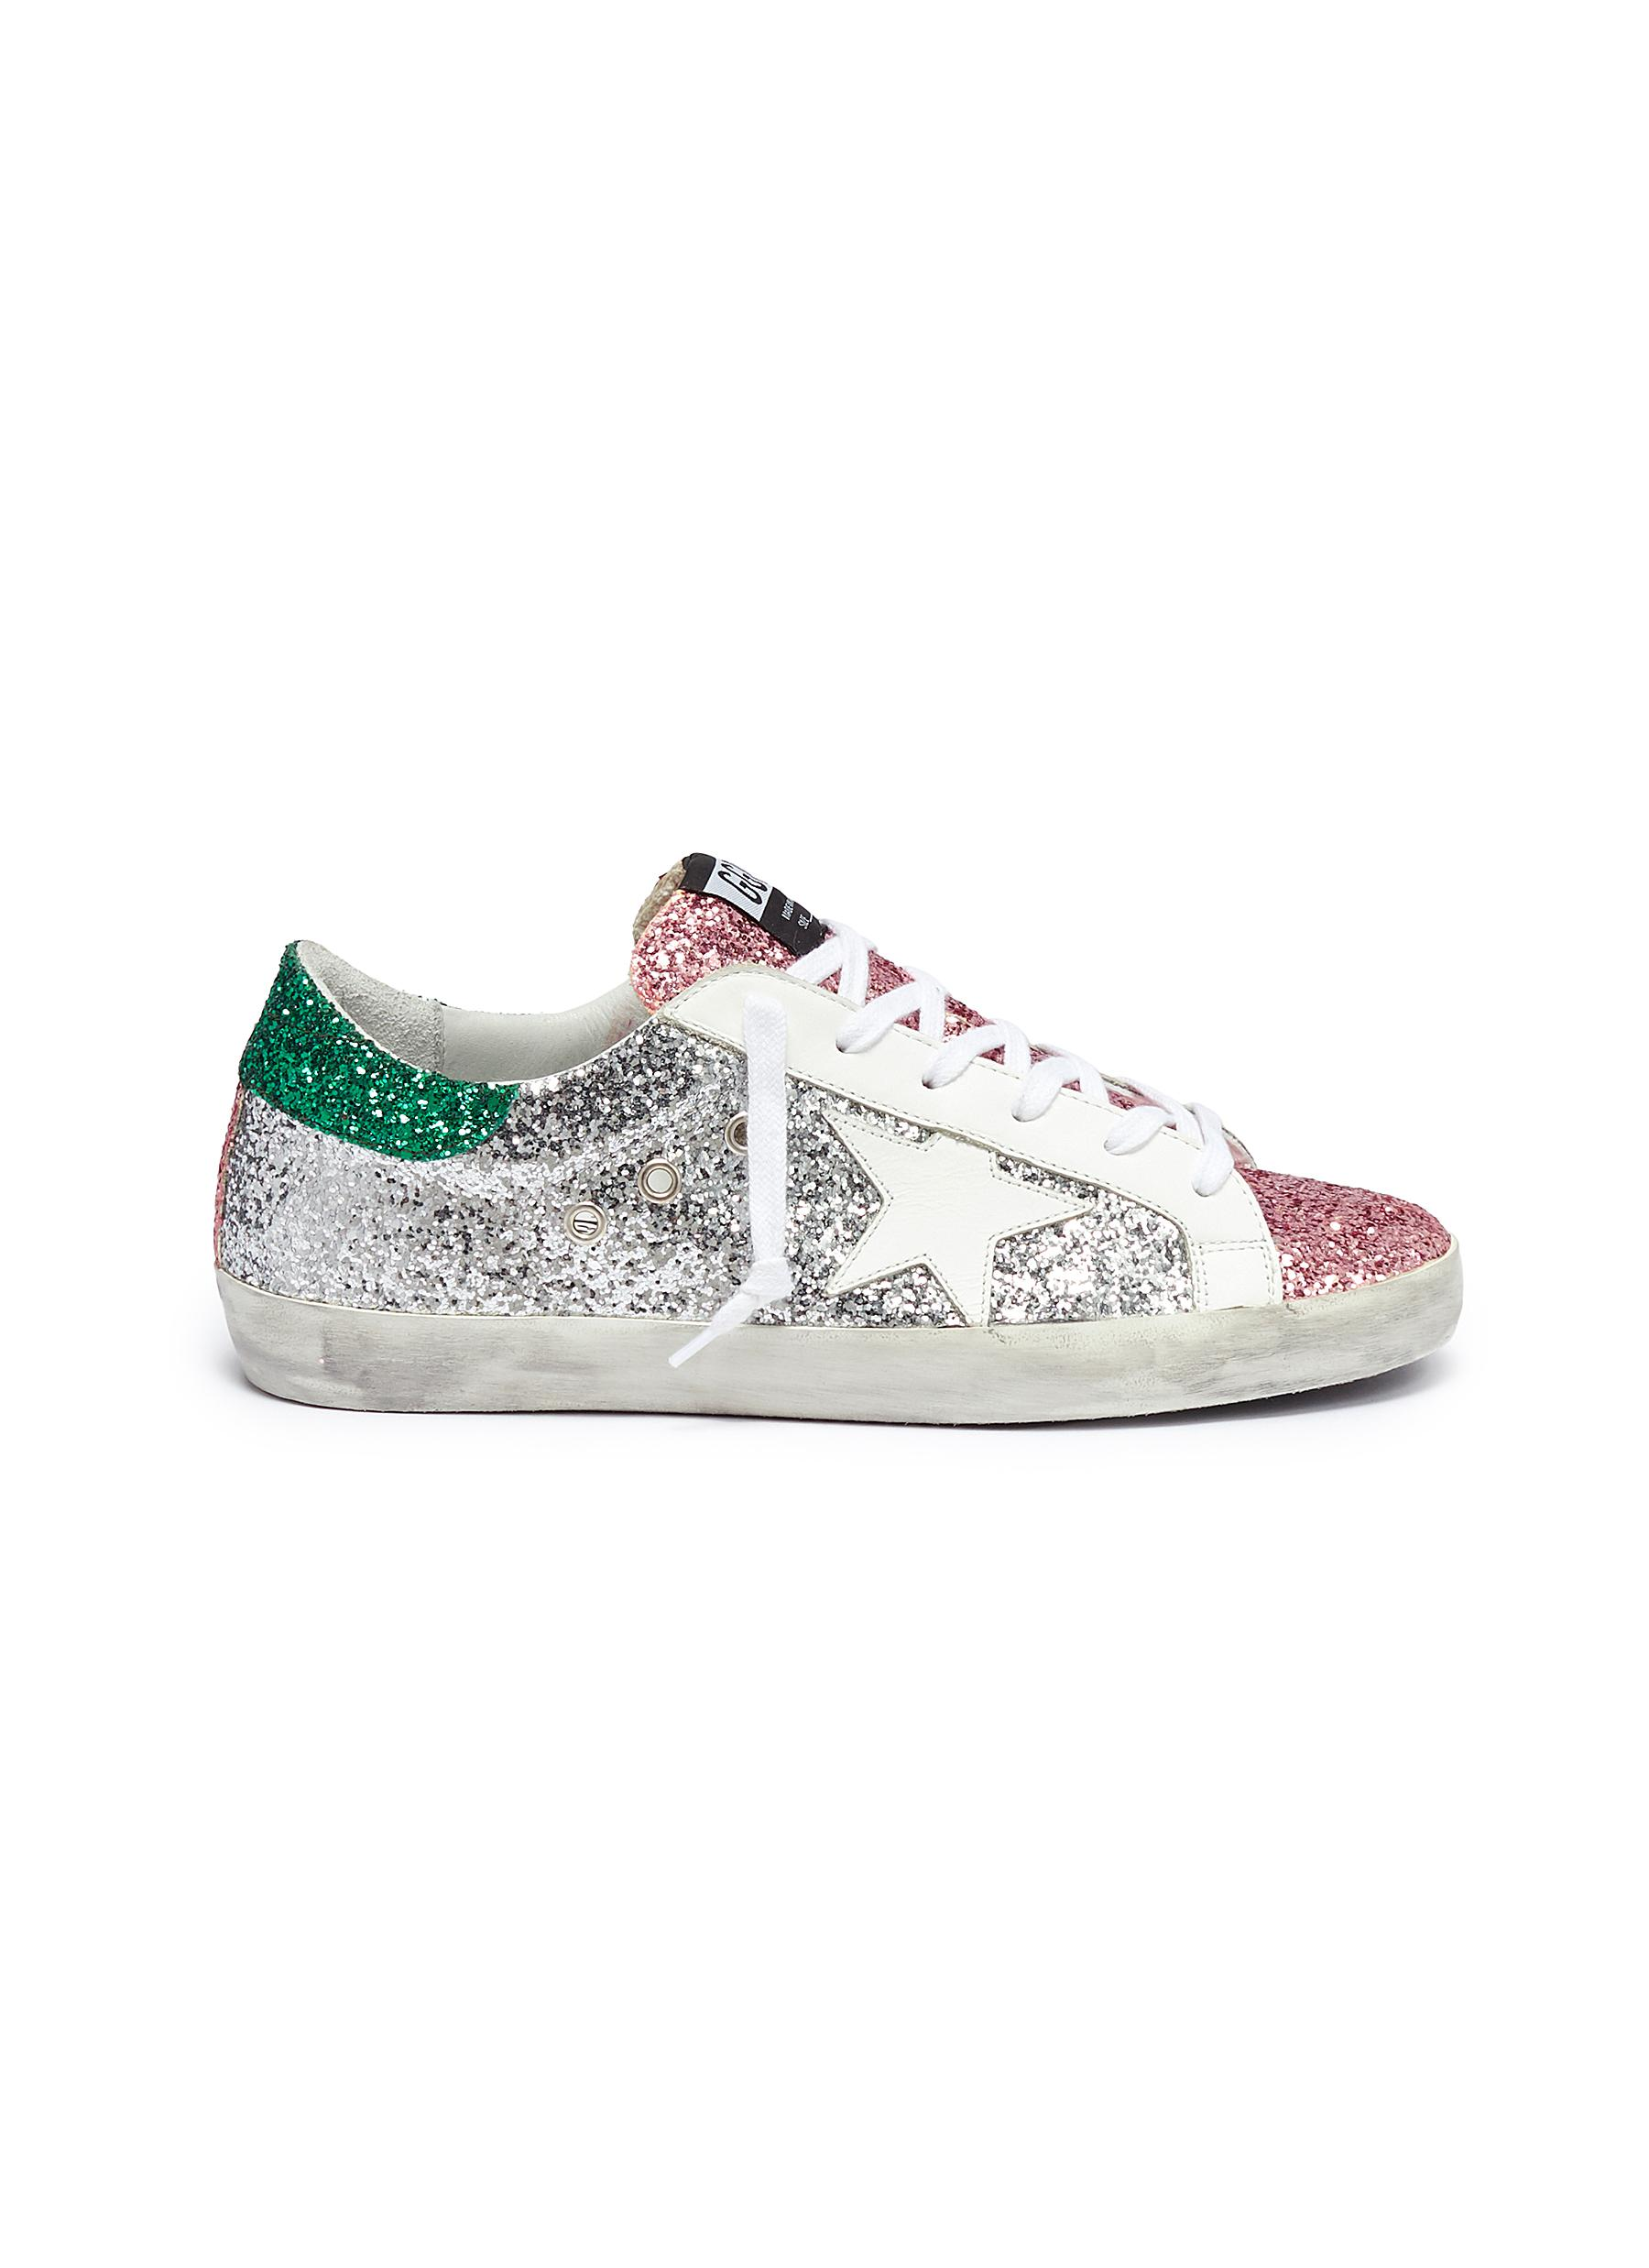 Superstar colourblock glitter coated leather sneakers by Golden Goose